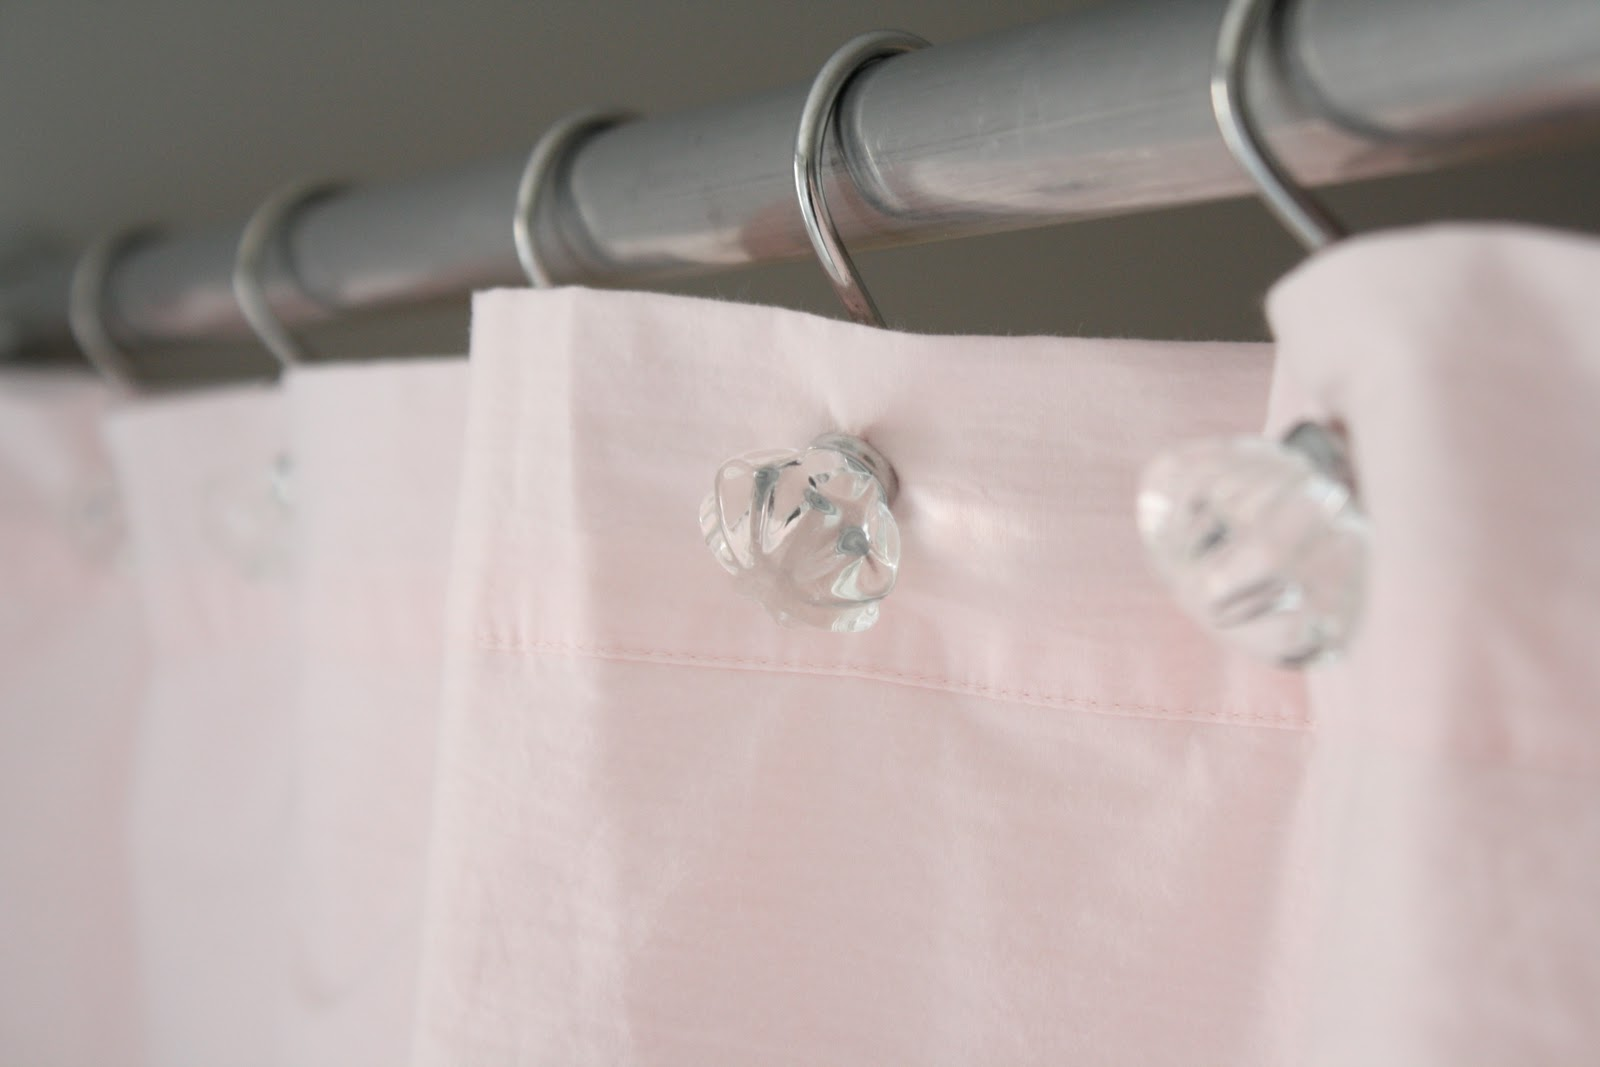 Shabby chic bathroom towel hooks for Shabby chic rhinestone shower hooks